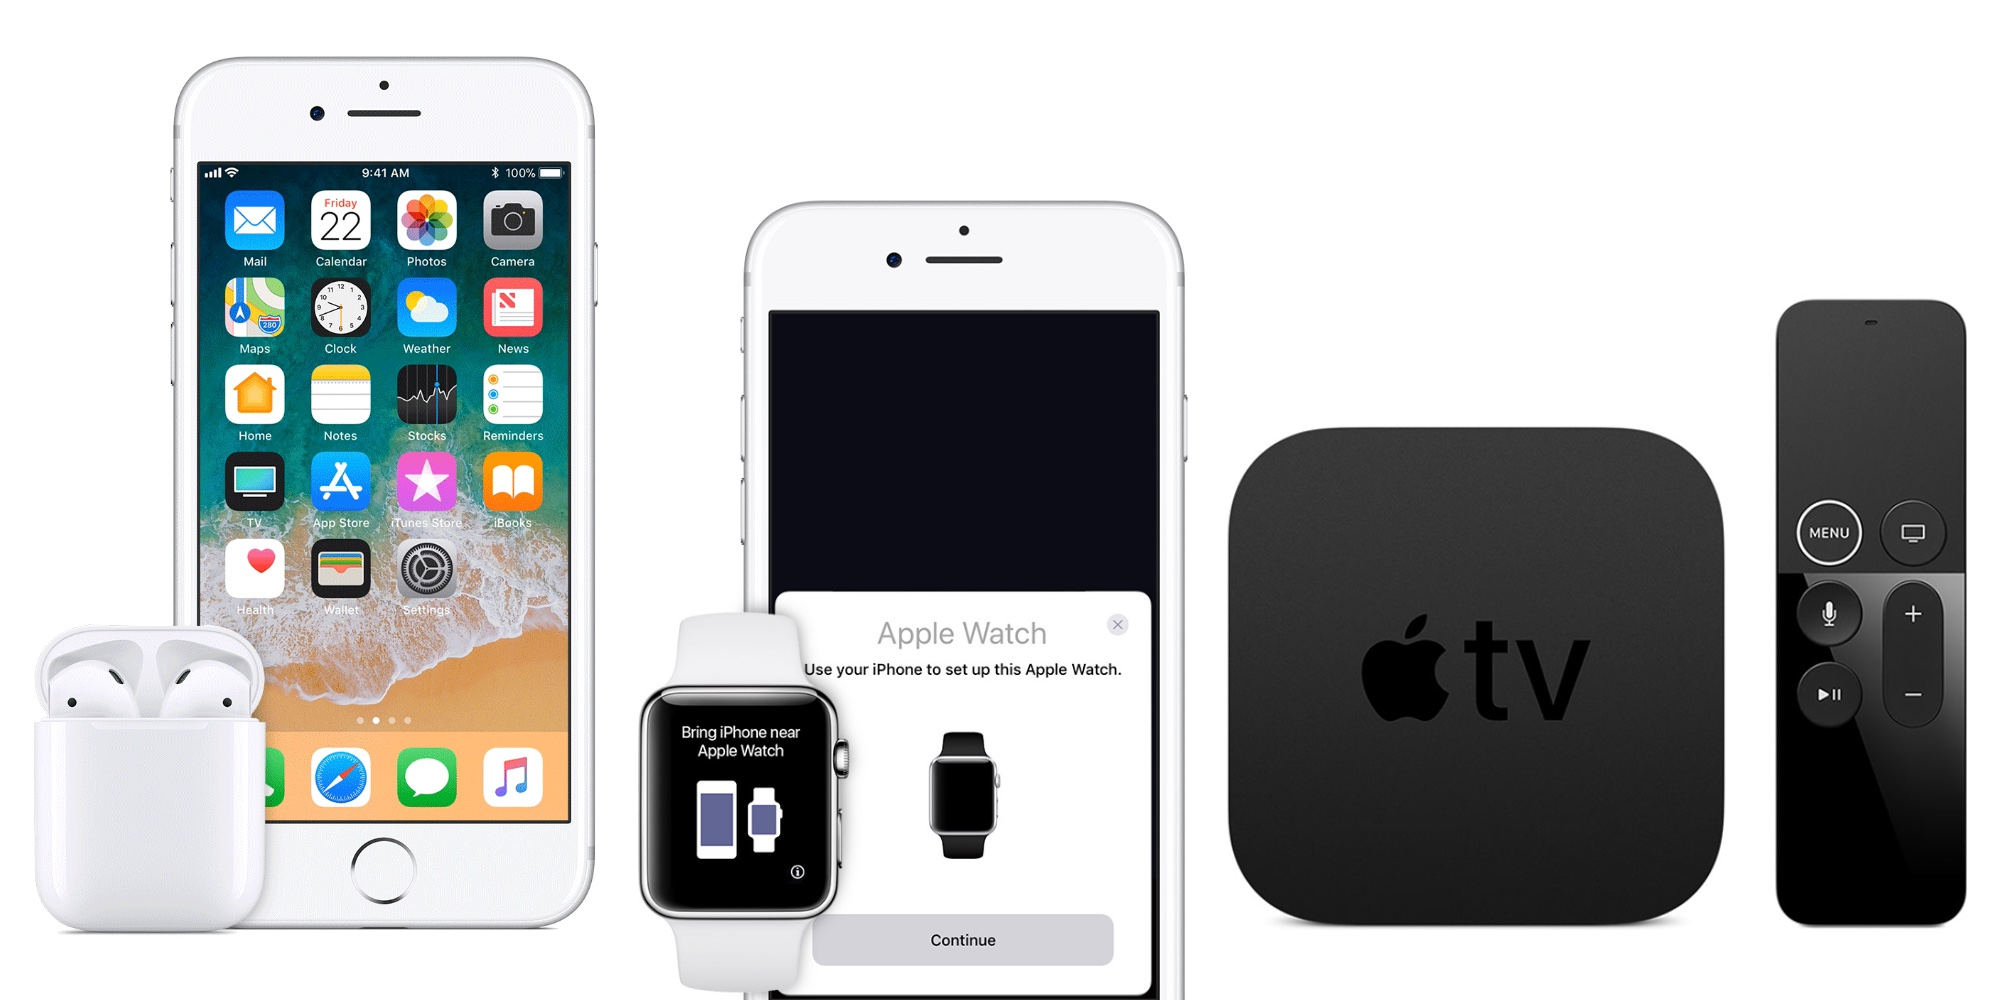 Quick Start and Set up with Device dramatically simplifies setting up new Apple devices